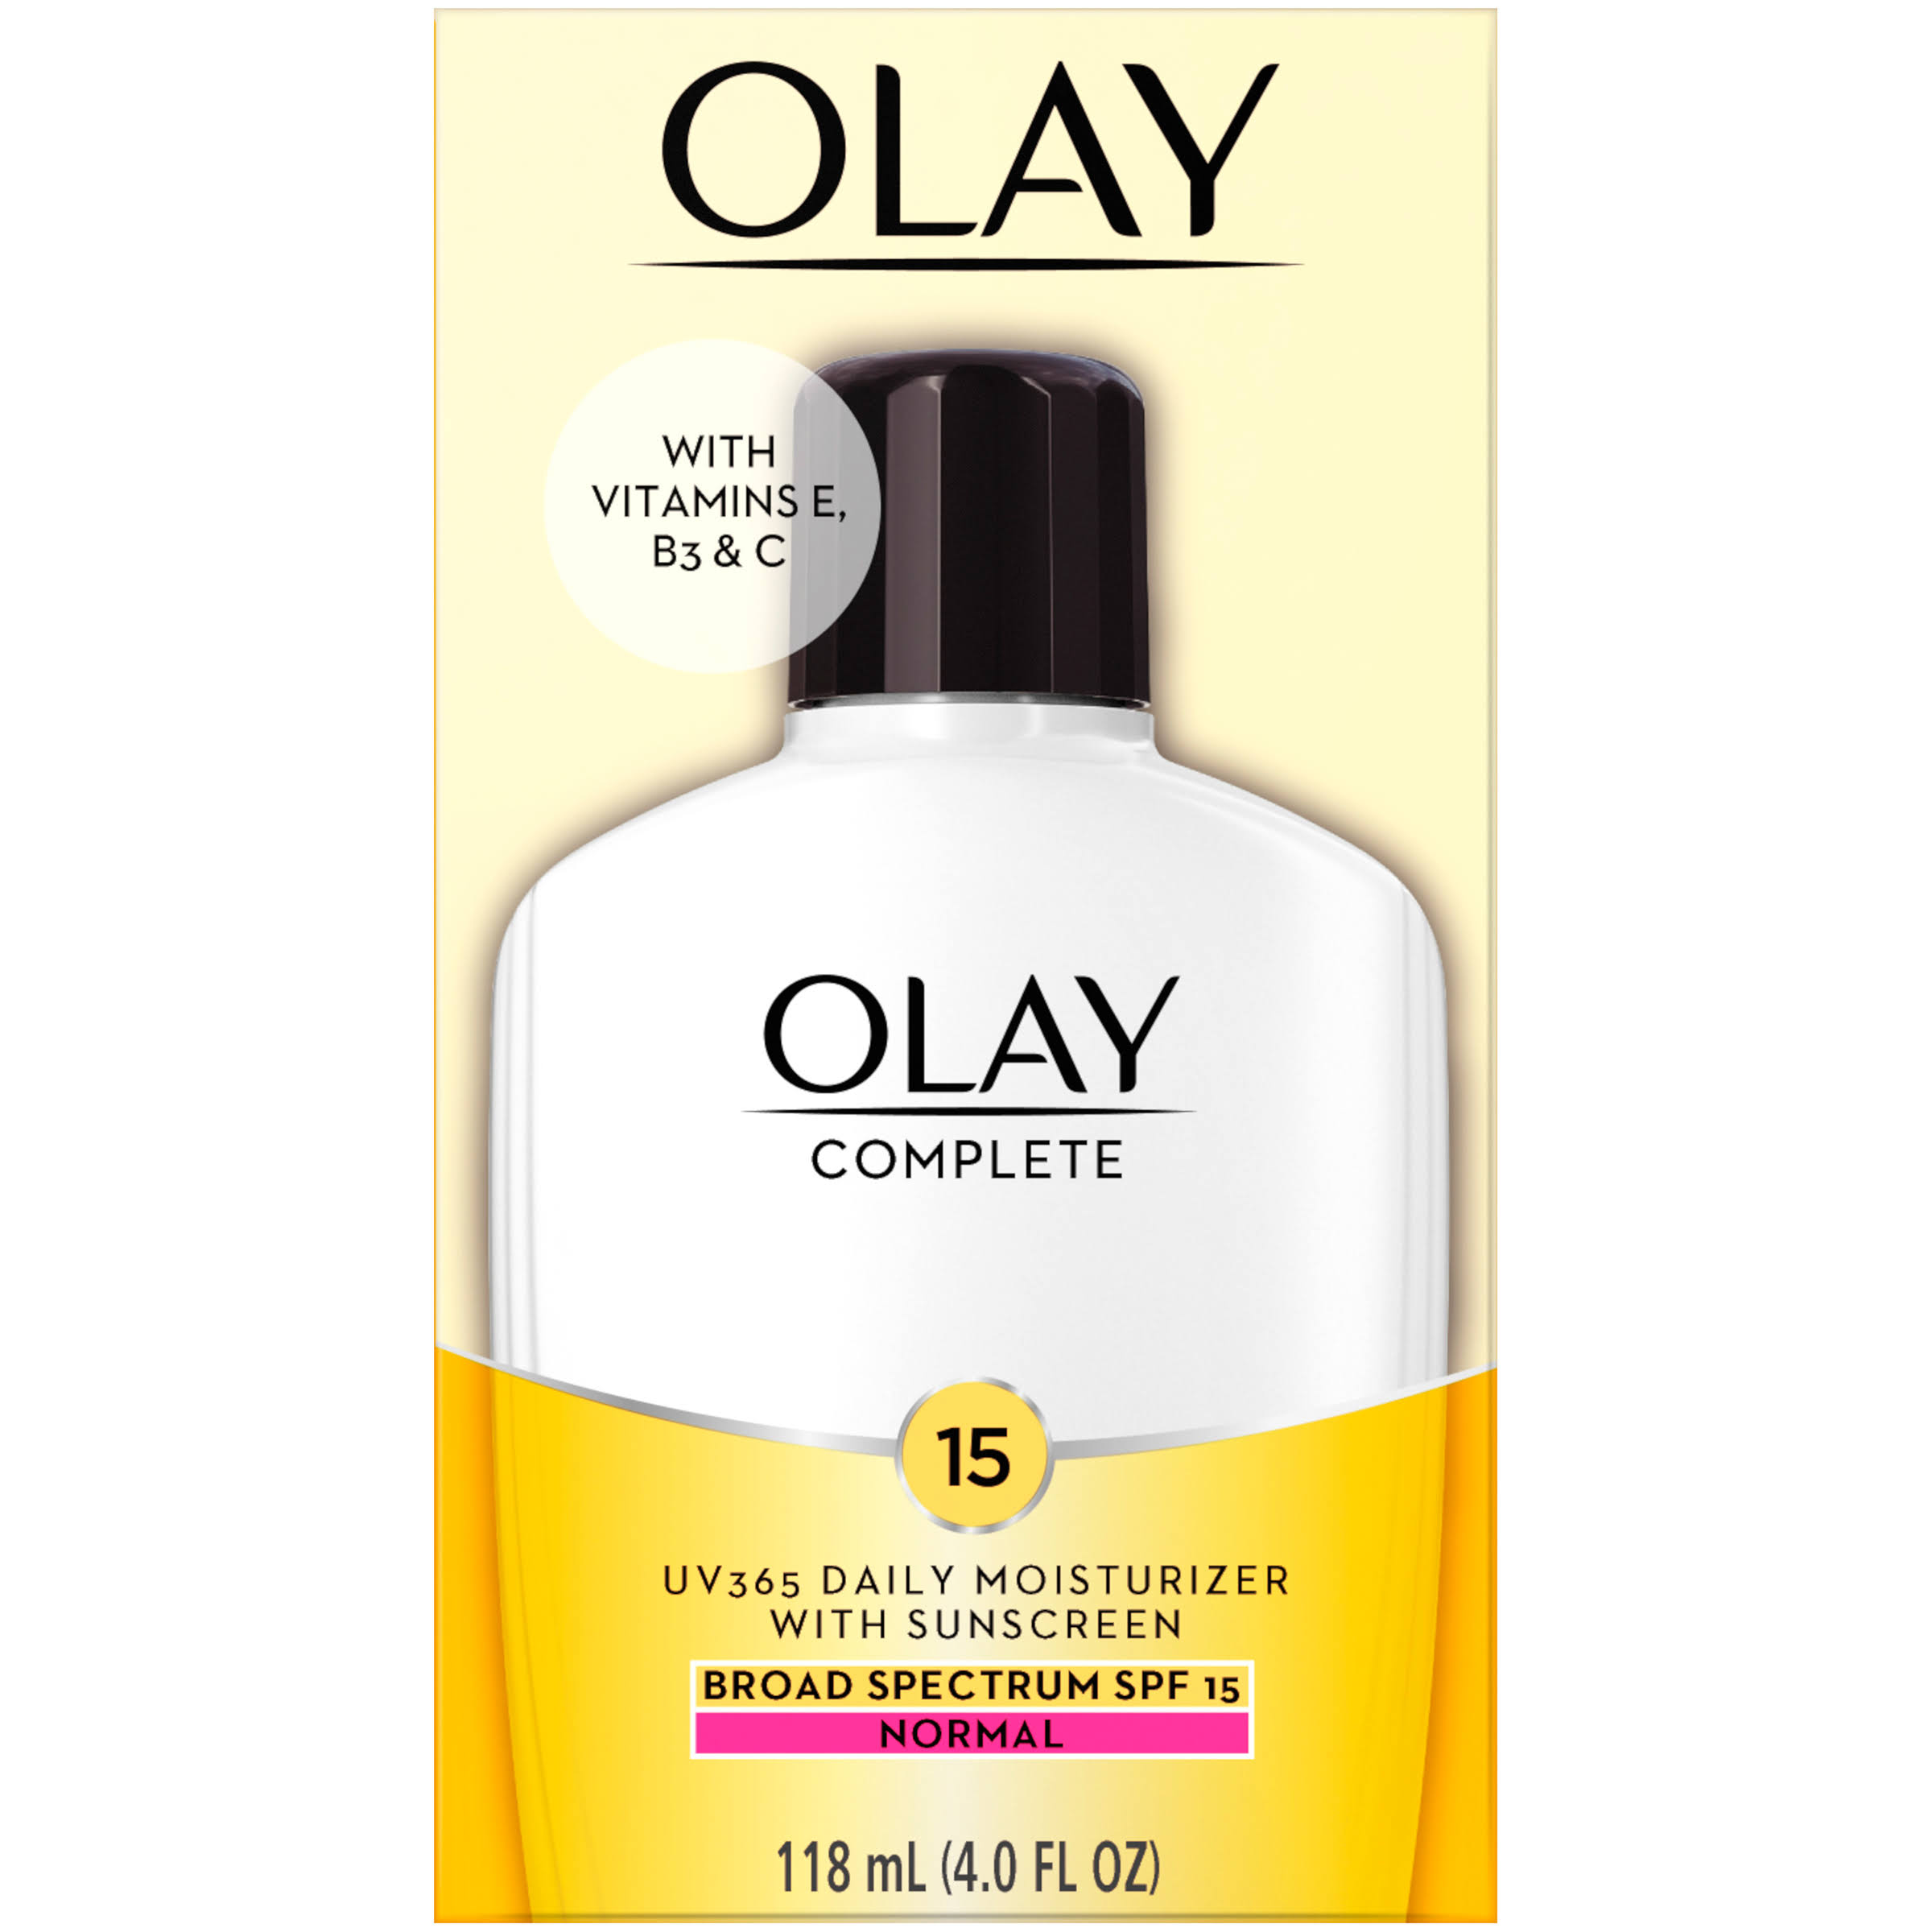 Olay Complete All Day Moisturizer - Spf 15, 4oz